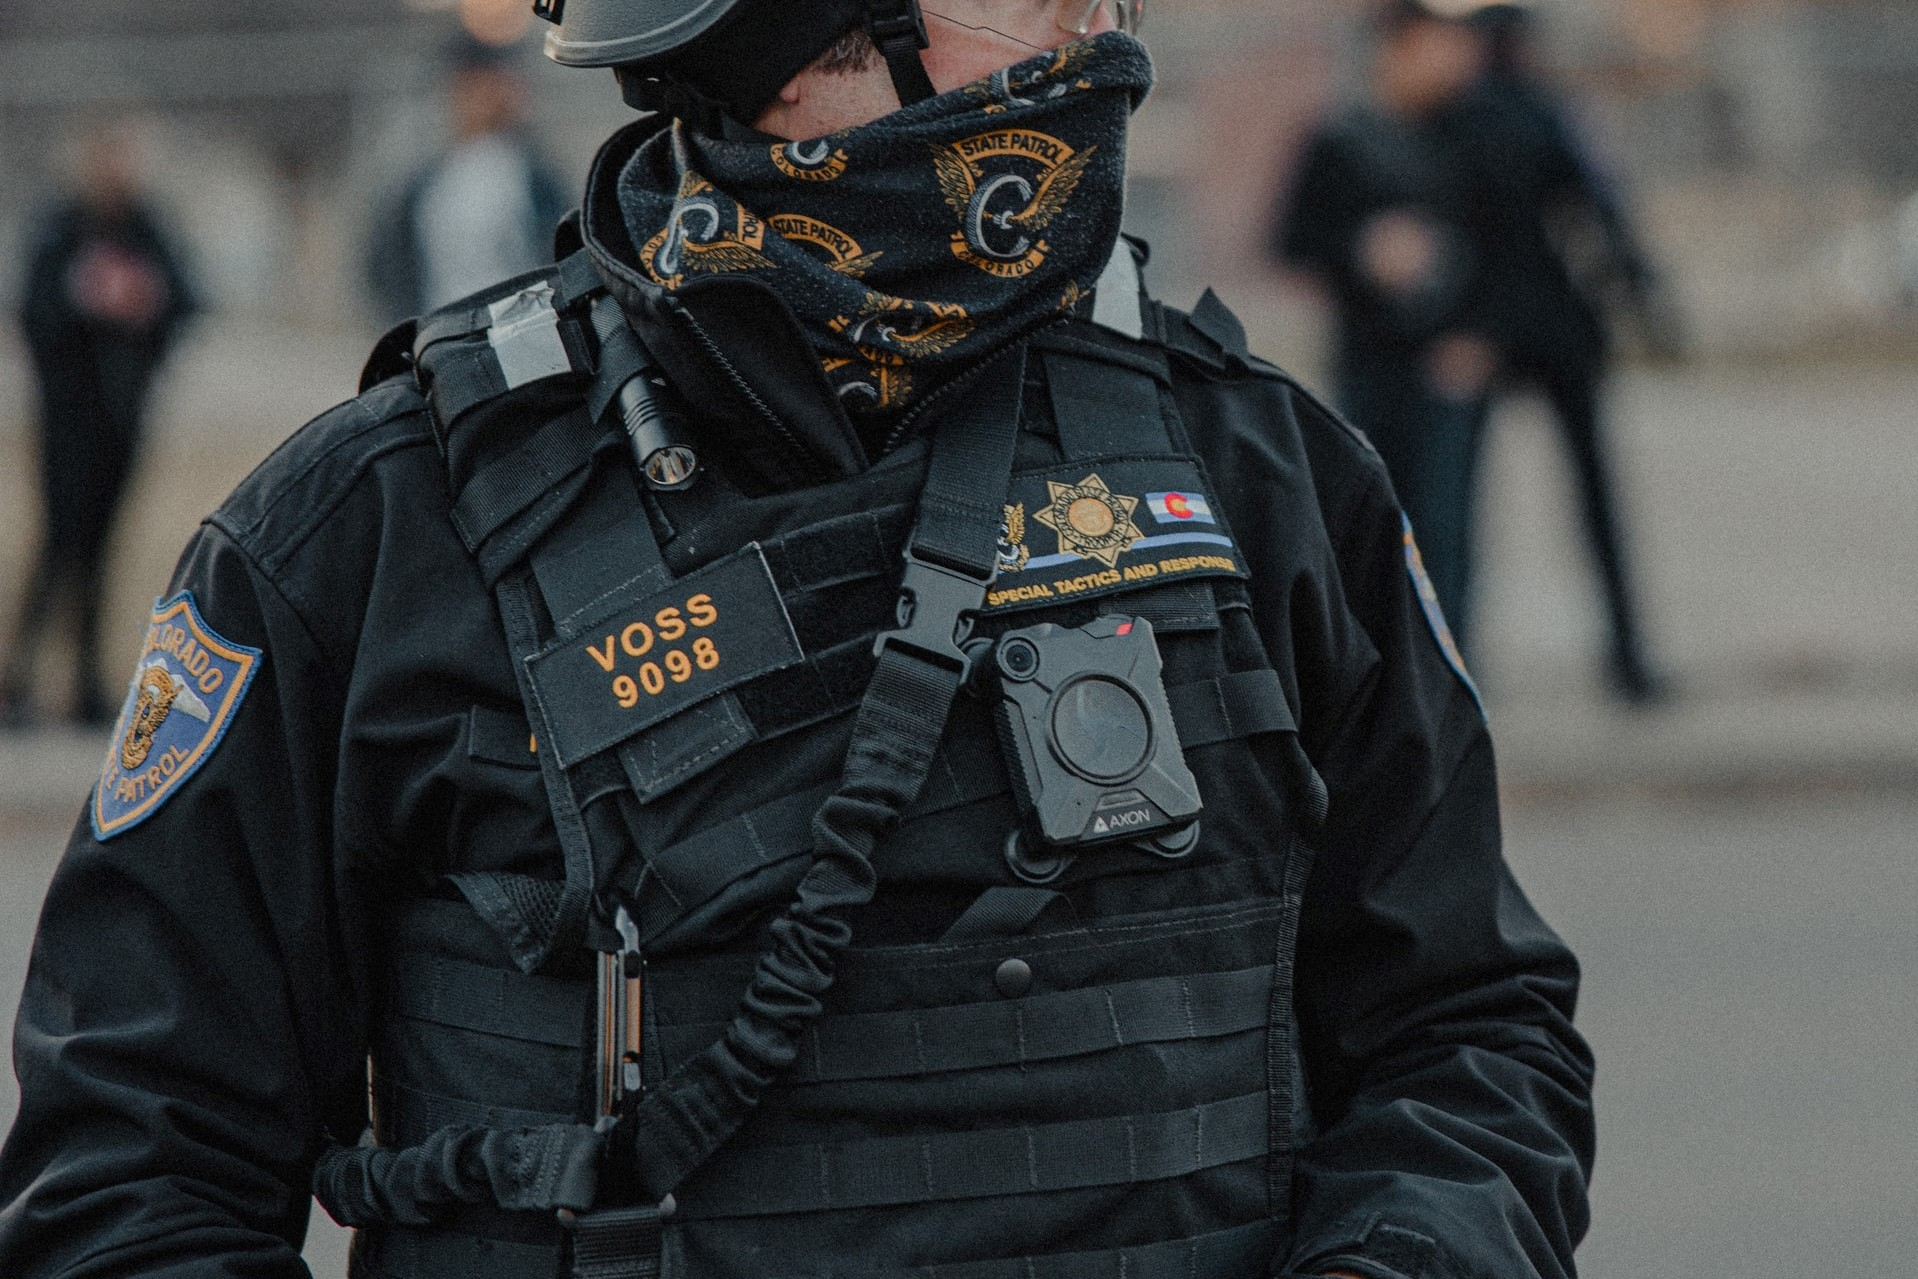 The DOJ has issued a memo on body cams for federal agents.